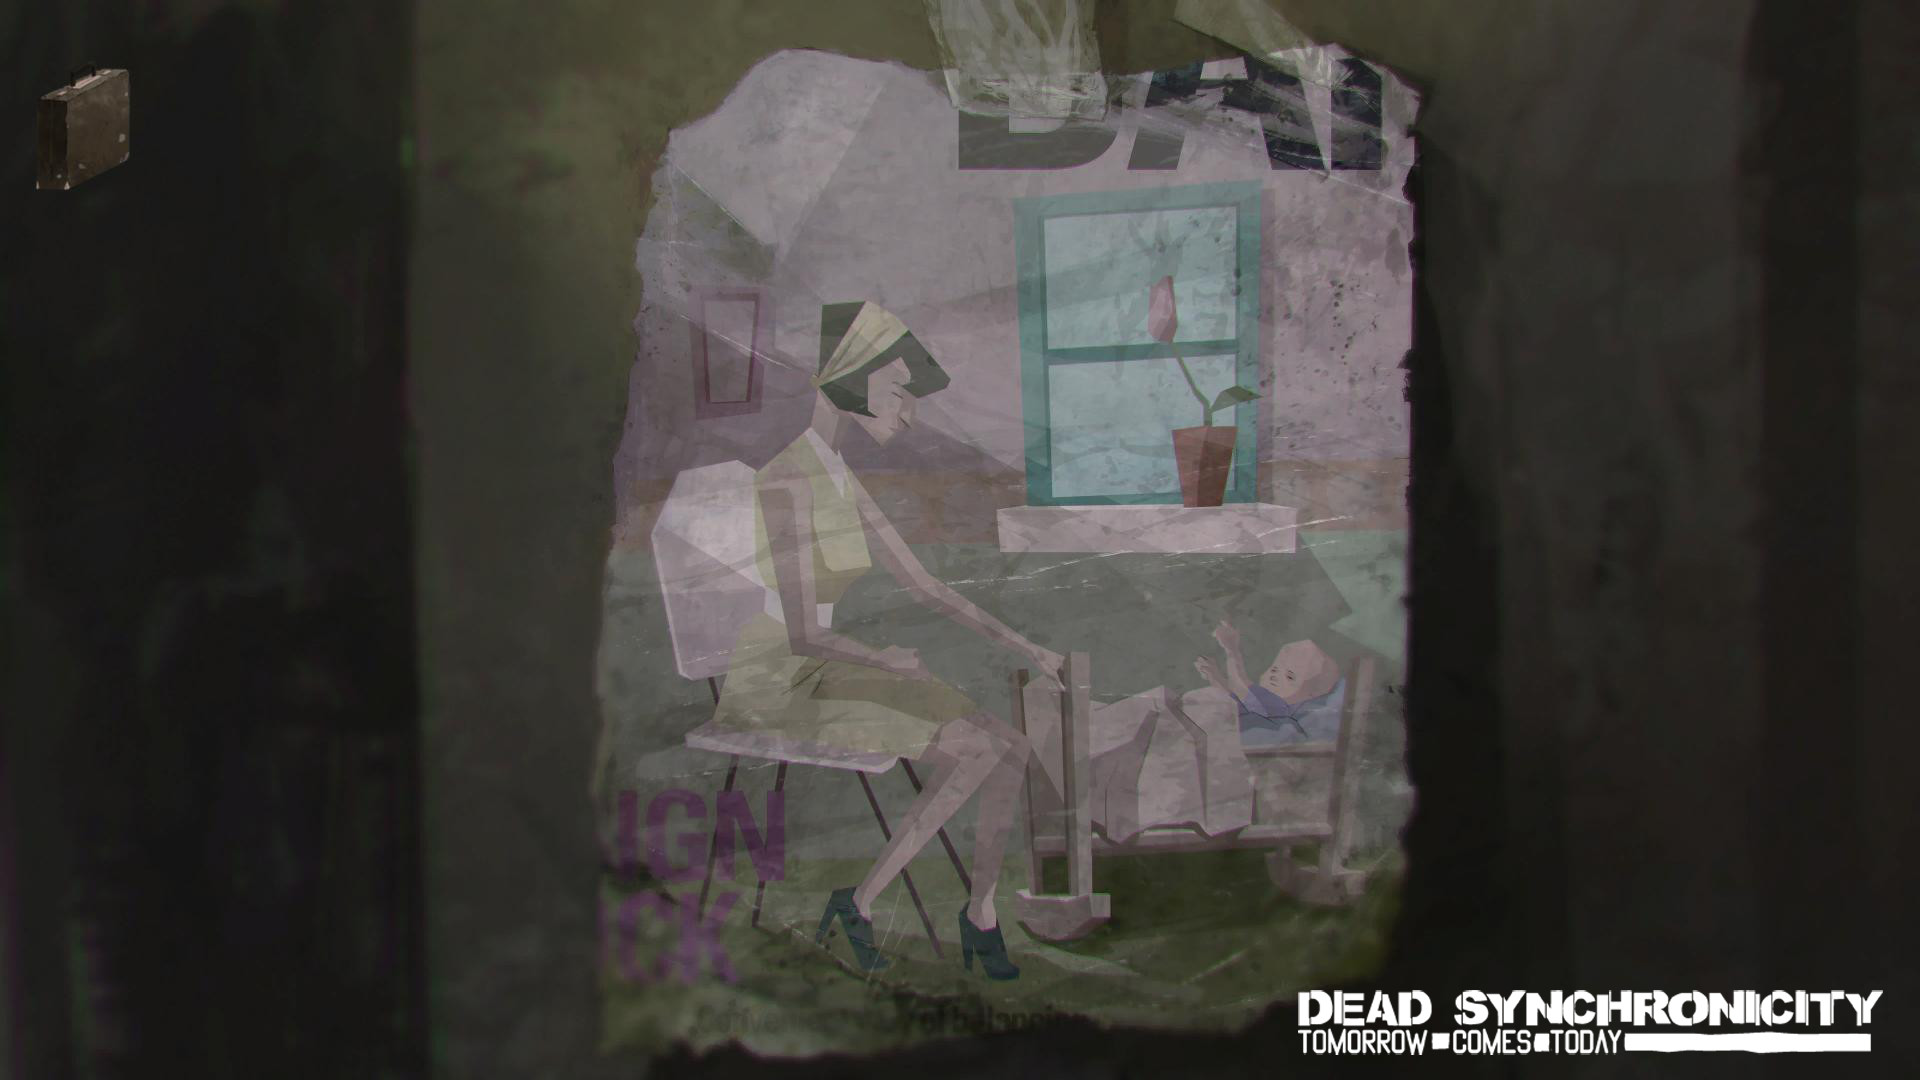 Dead Synchronicity: Tomorrow Comes Today screenshot